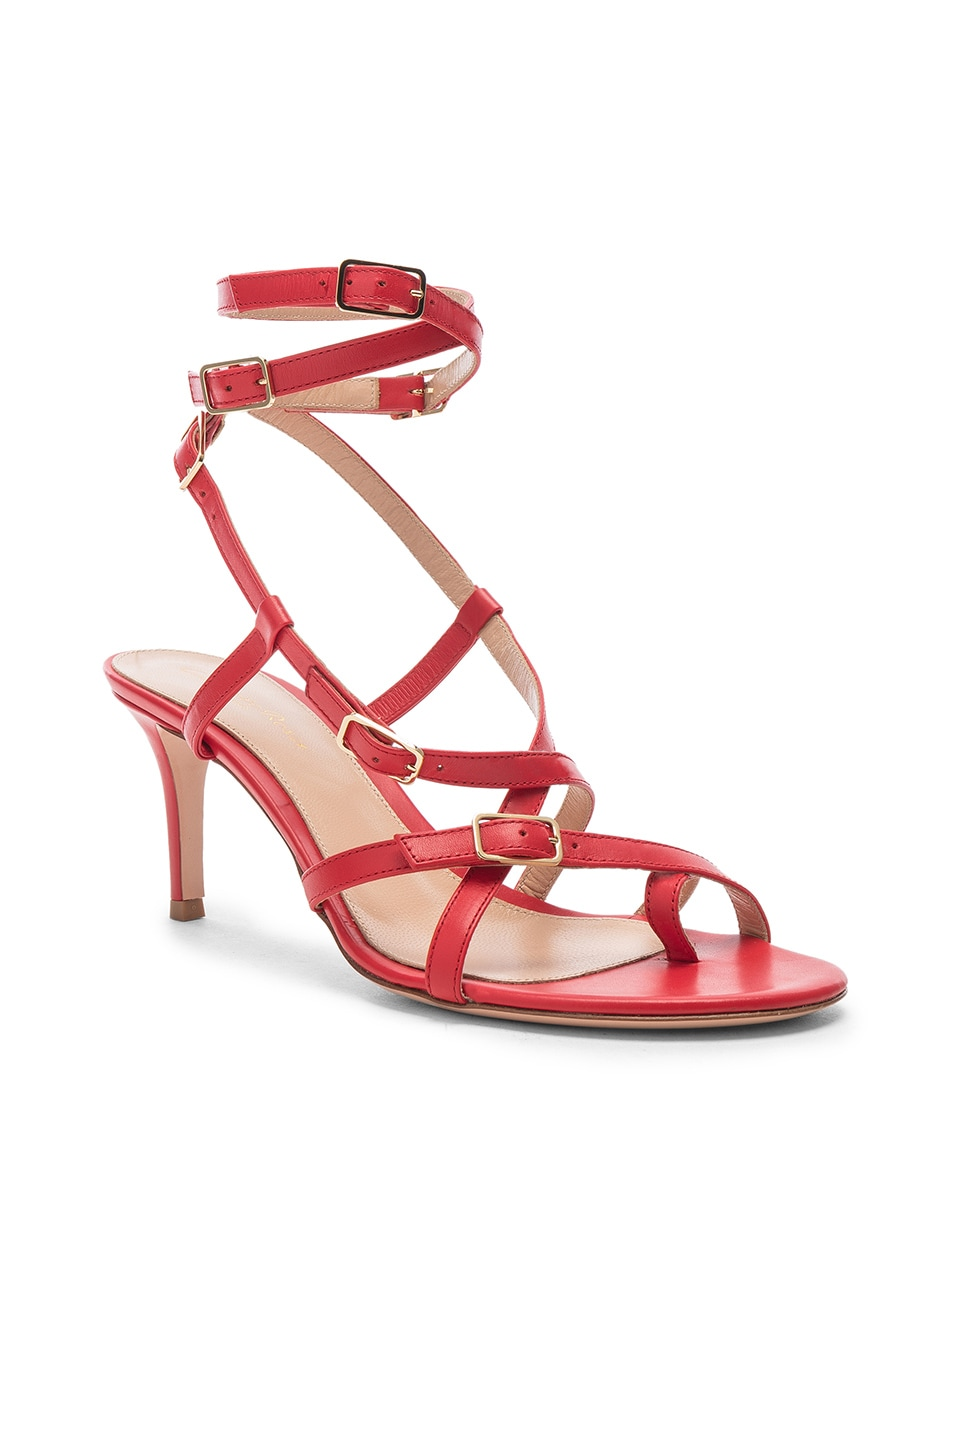 Image 2 of Gianvito Rossi Cory Buckle Strappy Heel in Tabasco Red